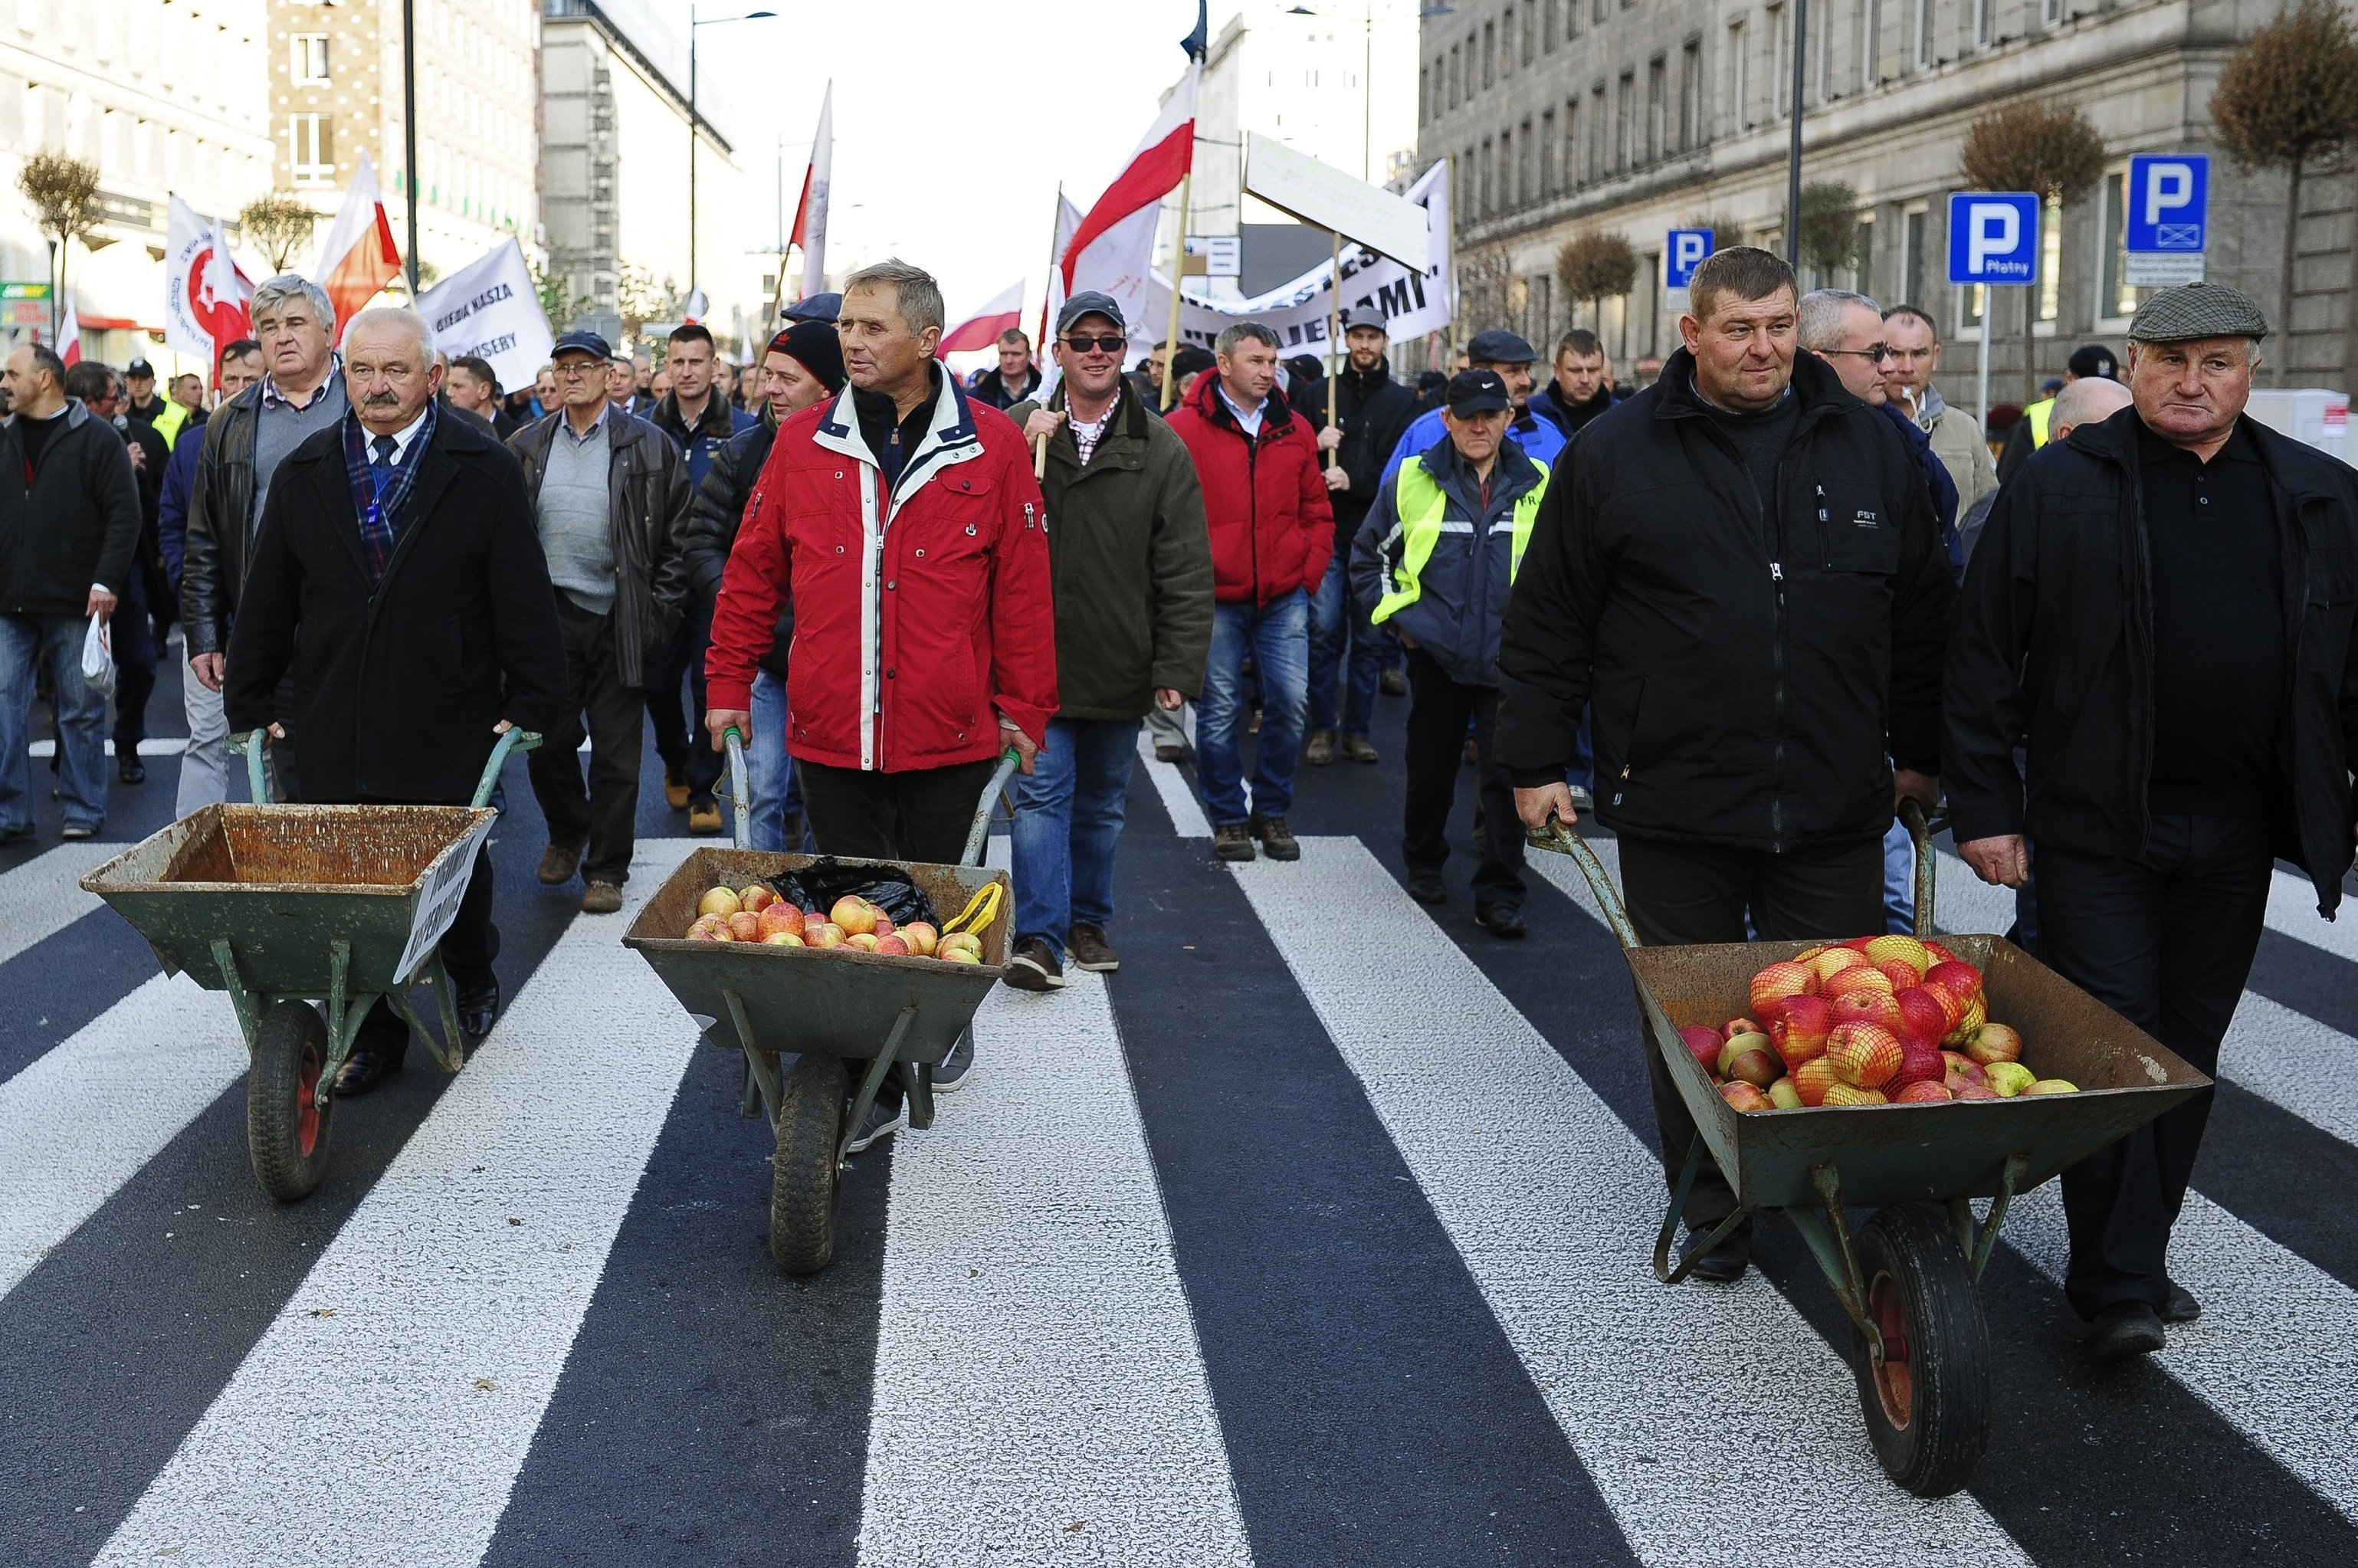 Hundreds of Polish farmers and horticulturists staged a march in Warsaw in protest against Russia's ban on the import of their fruit and vegetables. File photo